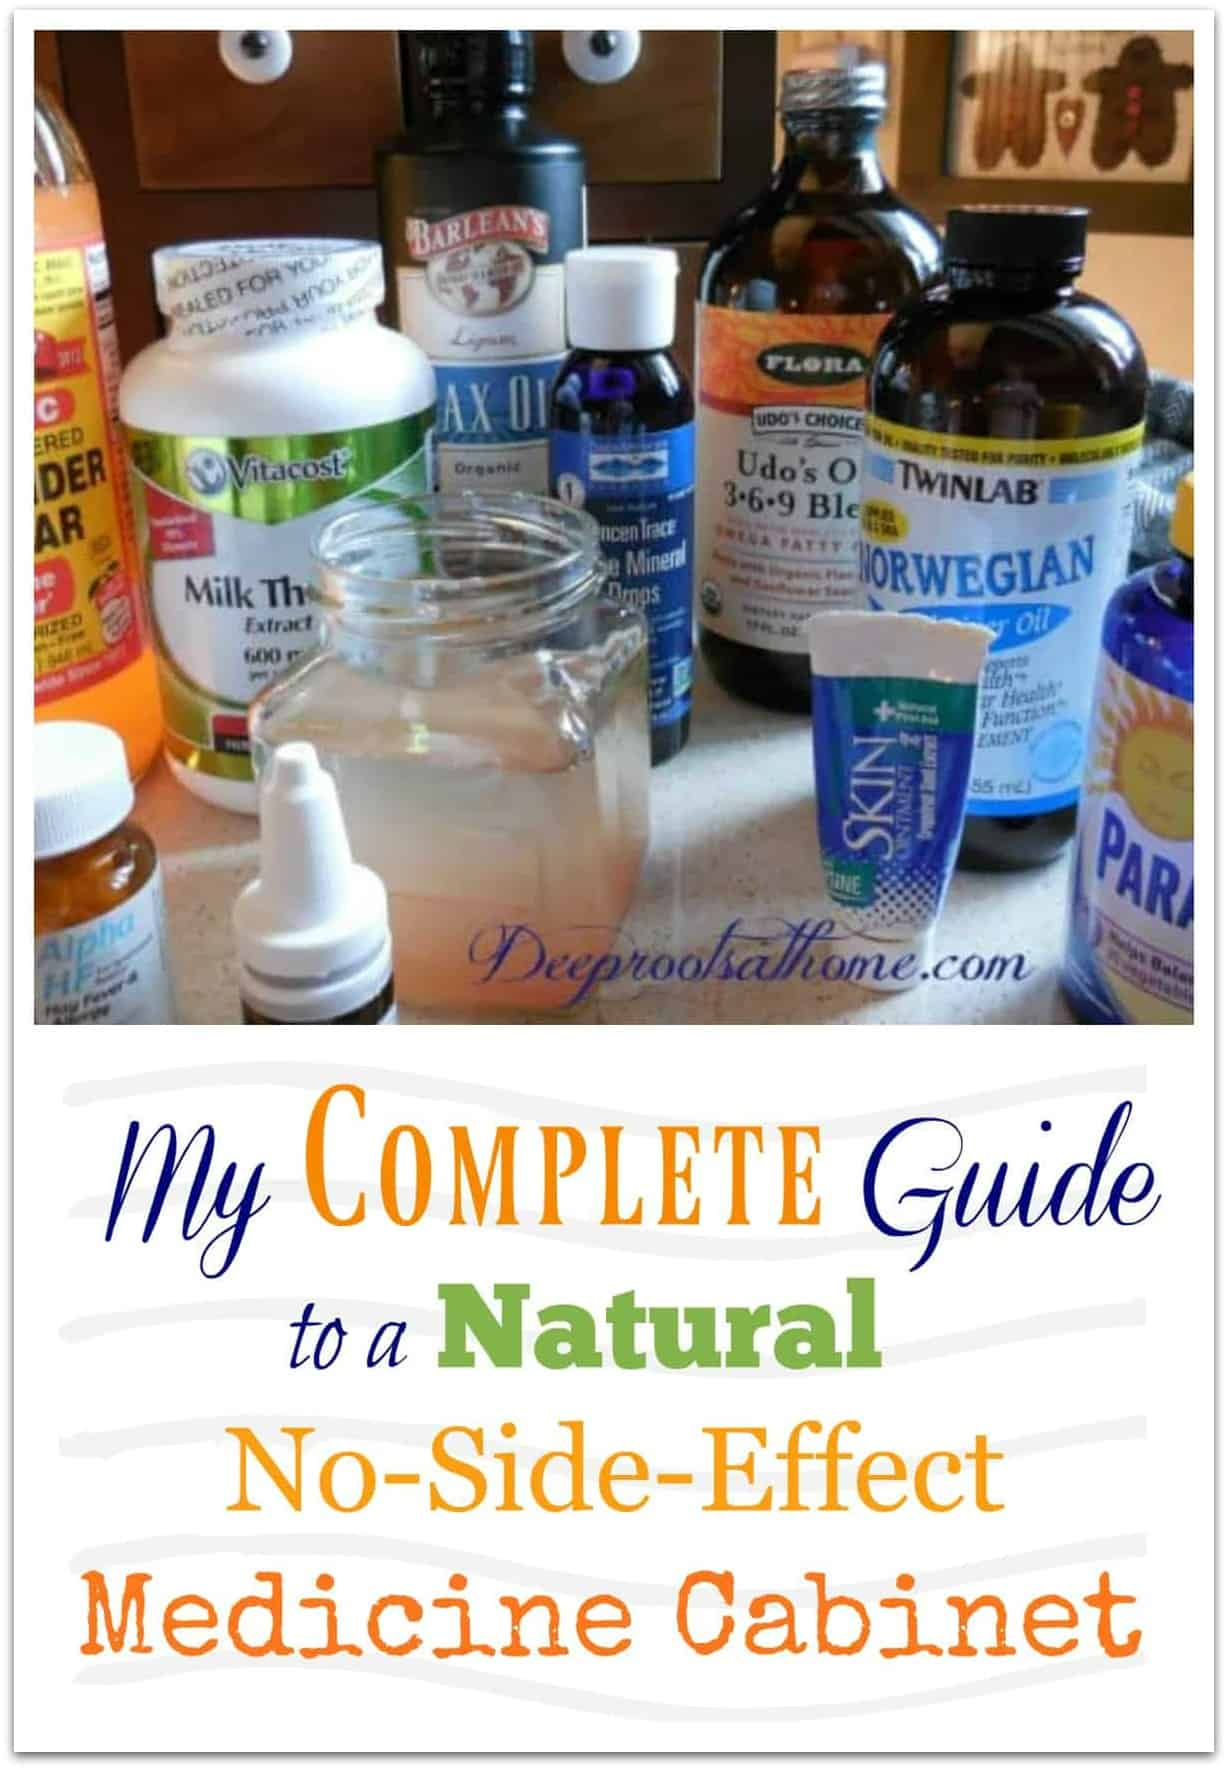 Complete Guide To A Natural No-Side-Effect Medicine Cabinet. Many of the alternative supplements that we've used in our home for over 30 years that work for us.